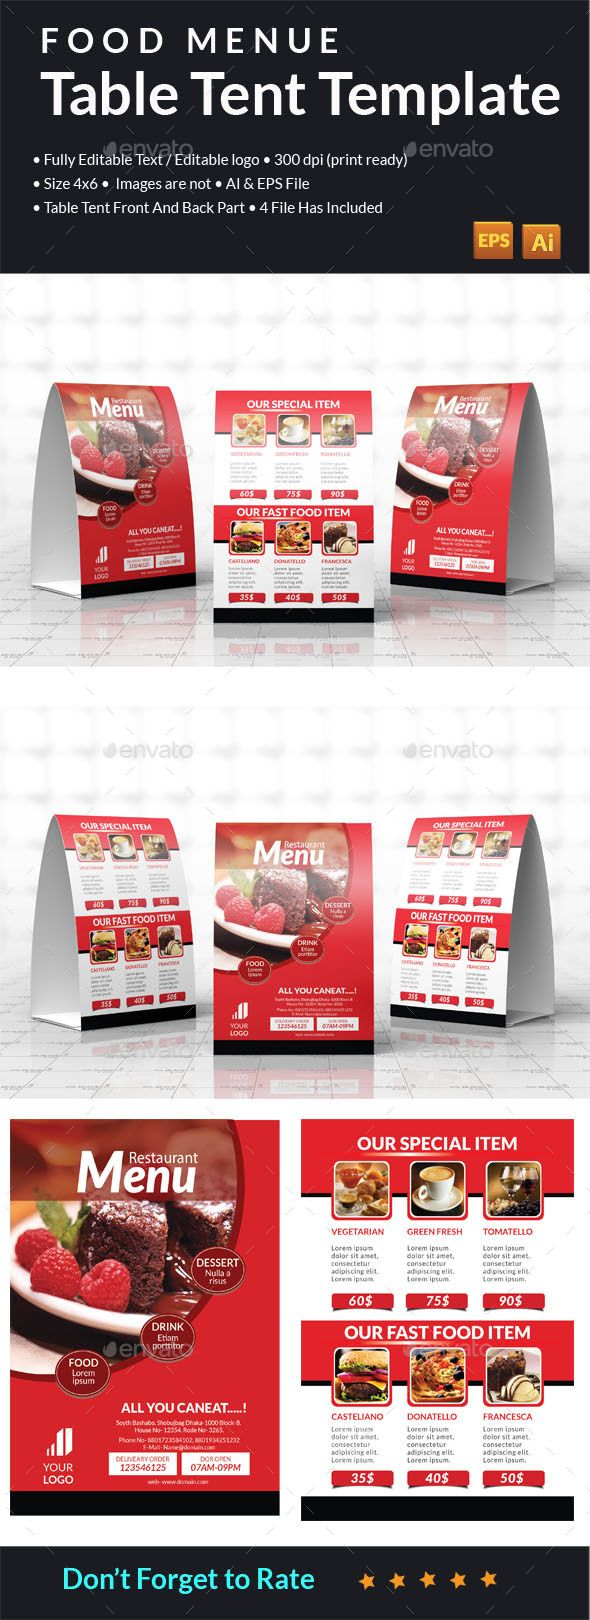 Food Menu Table Tent  Table Tents Menu Templates And Template